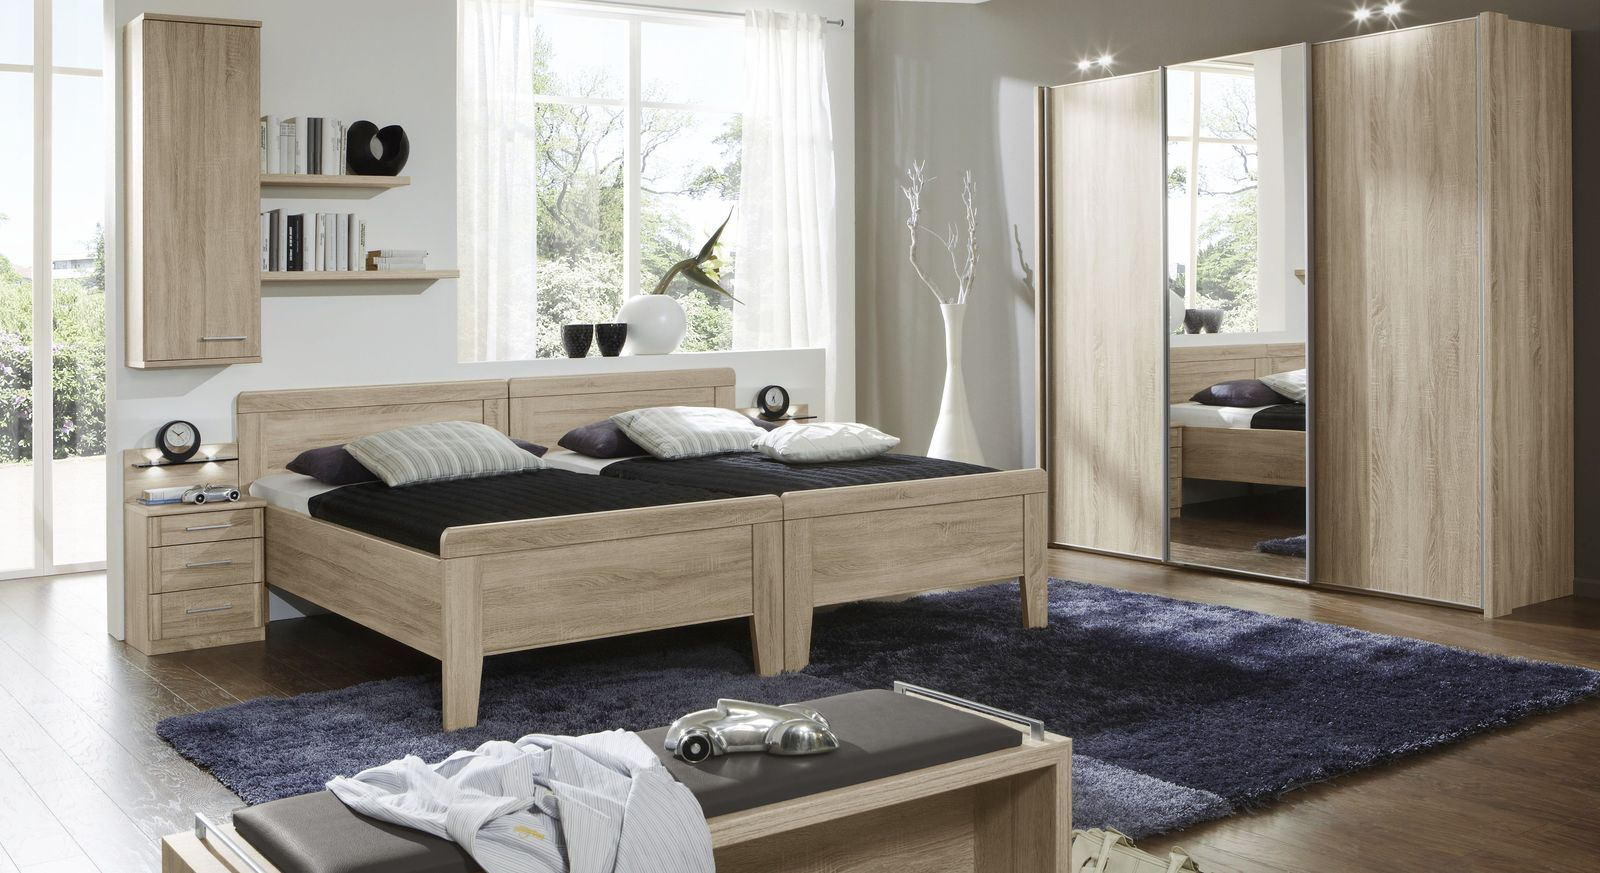 hoher wandschrank zum h ngen mit fachboden eiche dekor palmira. Black Bedroom Furniture Sets. Home Design Ideas